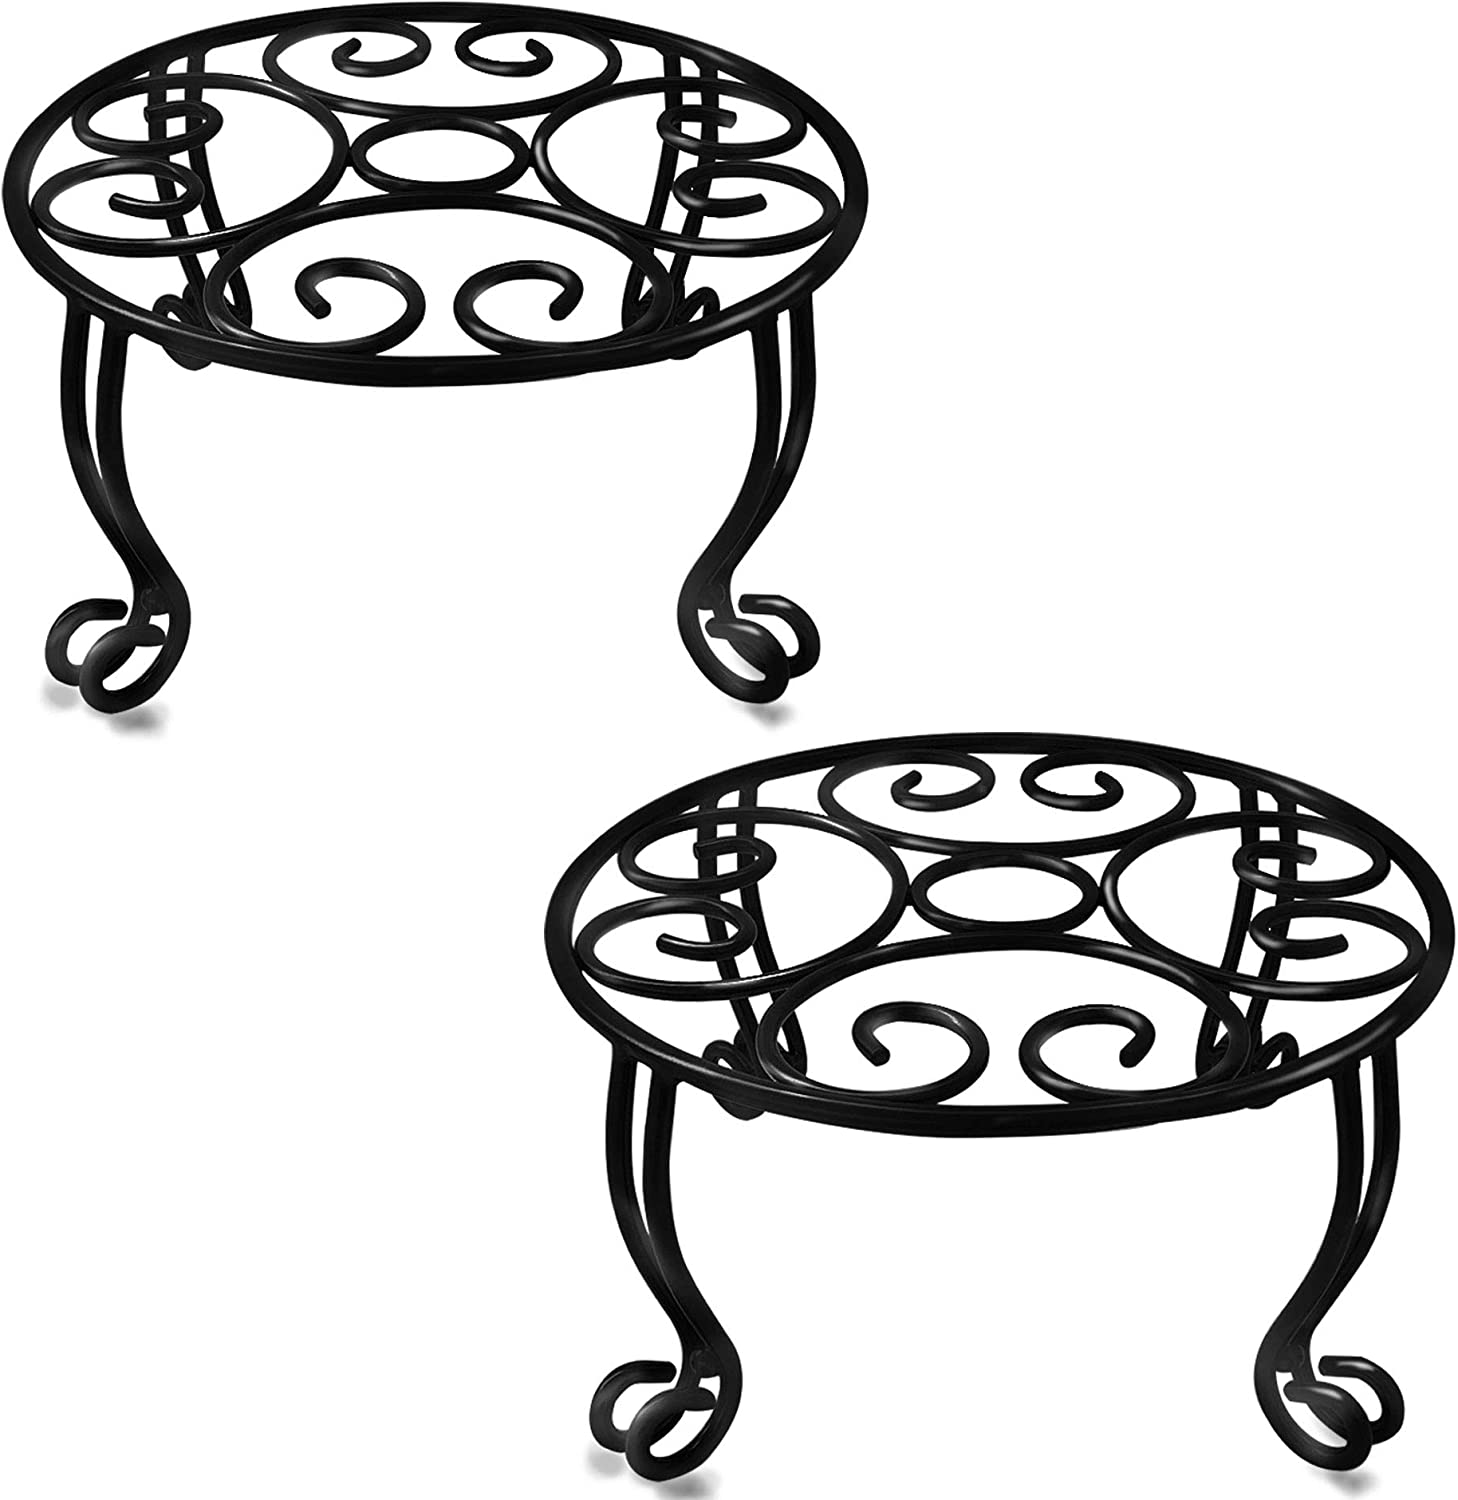 TREEZITEK 2 Pack Plant Stand for Flower Pot 6IN Height Heavy Duty Potted Holder Indoor Outdoor Metal Rustproof Iron Garden Container Round Supports Rack for Planter